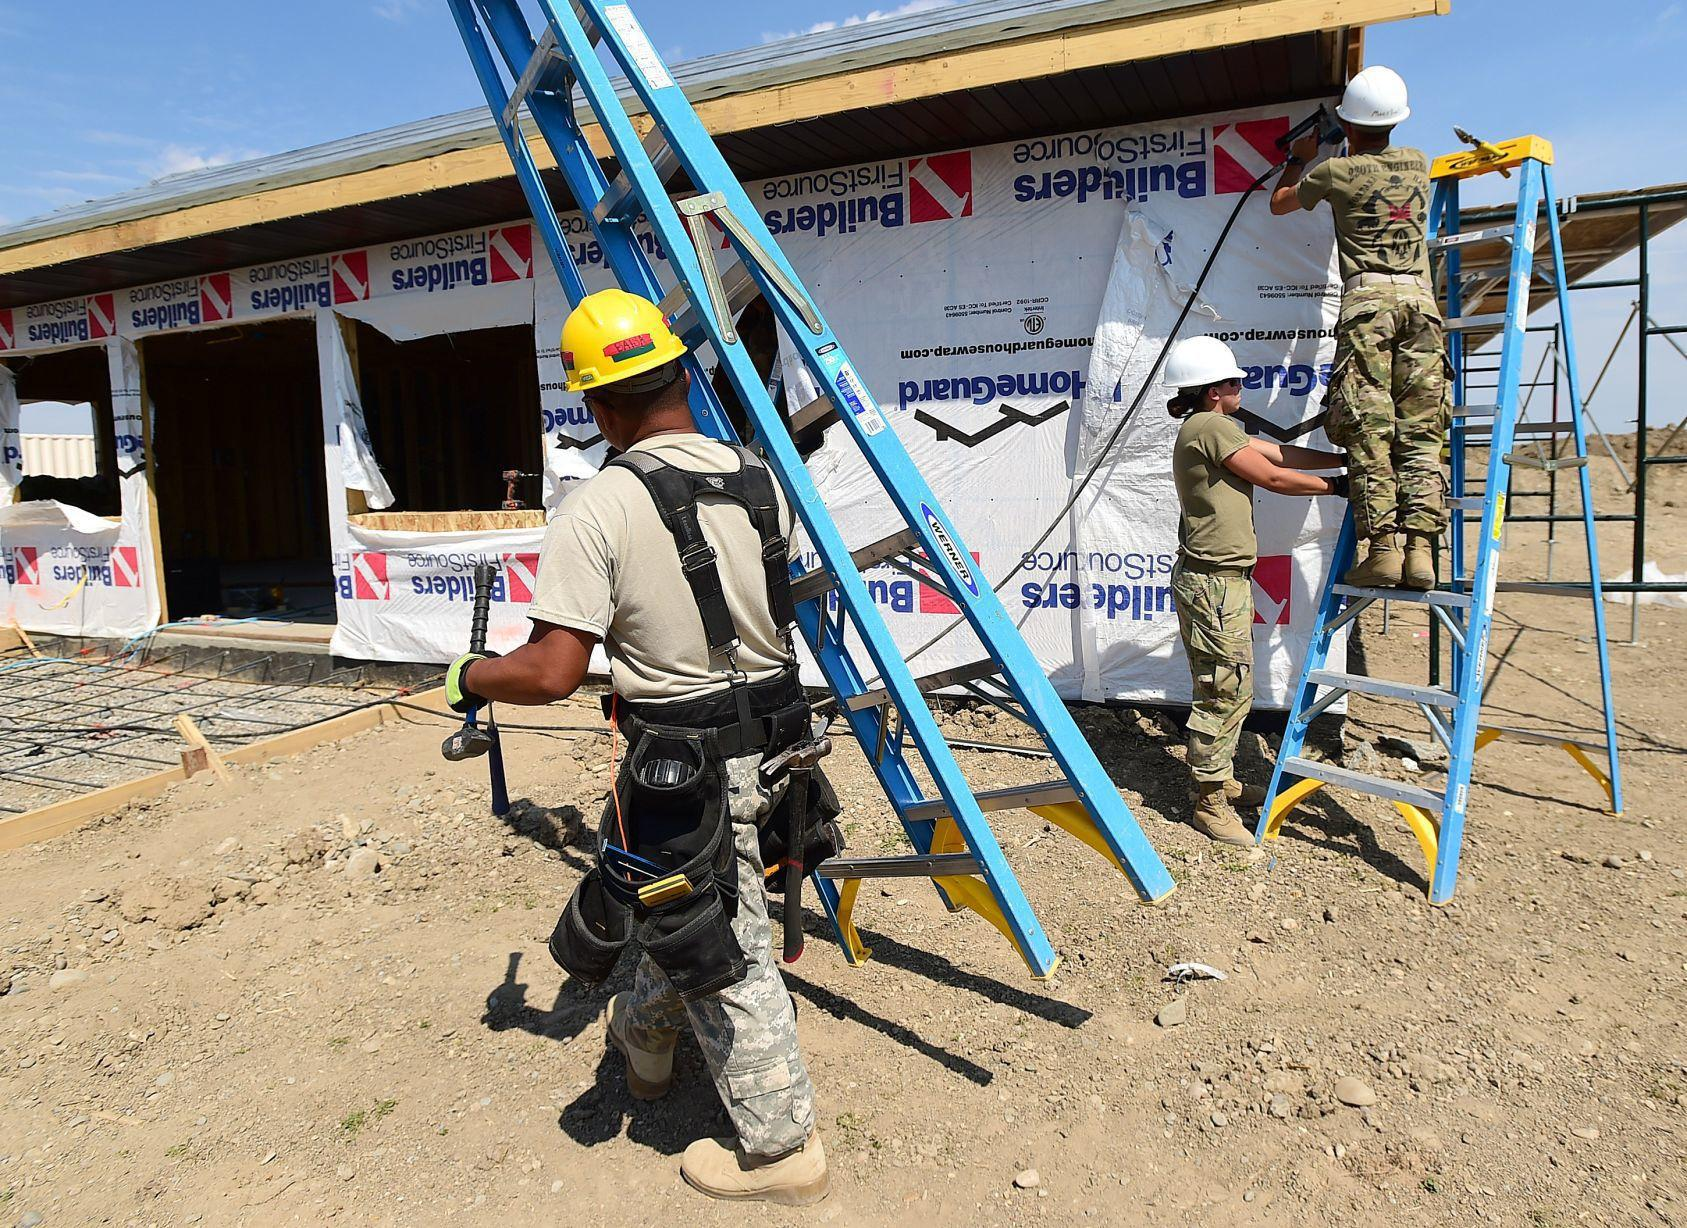 Montana and Hawaii Army National Guard 260th and 230th Engineers build a new home in the Apsaalooke Warrior Apartments near Crow Agency. From left, Sgt. Josiah Baisa, Spc. Johanna Lembke and Sgt. Benjamin Rinke work on the home on Tuesday. LARRY MAYER, Billings Gazette